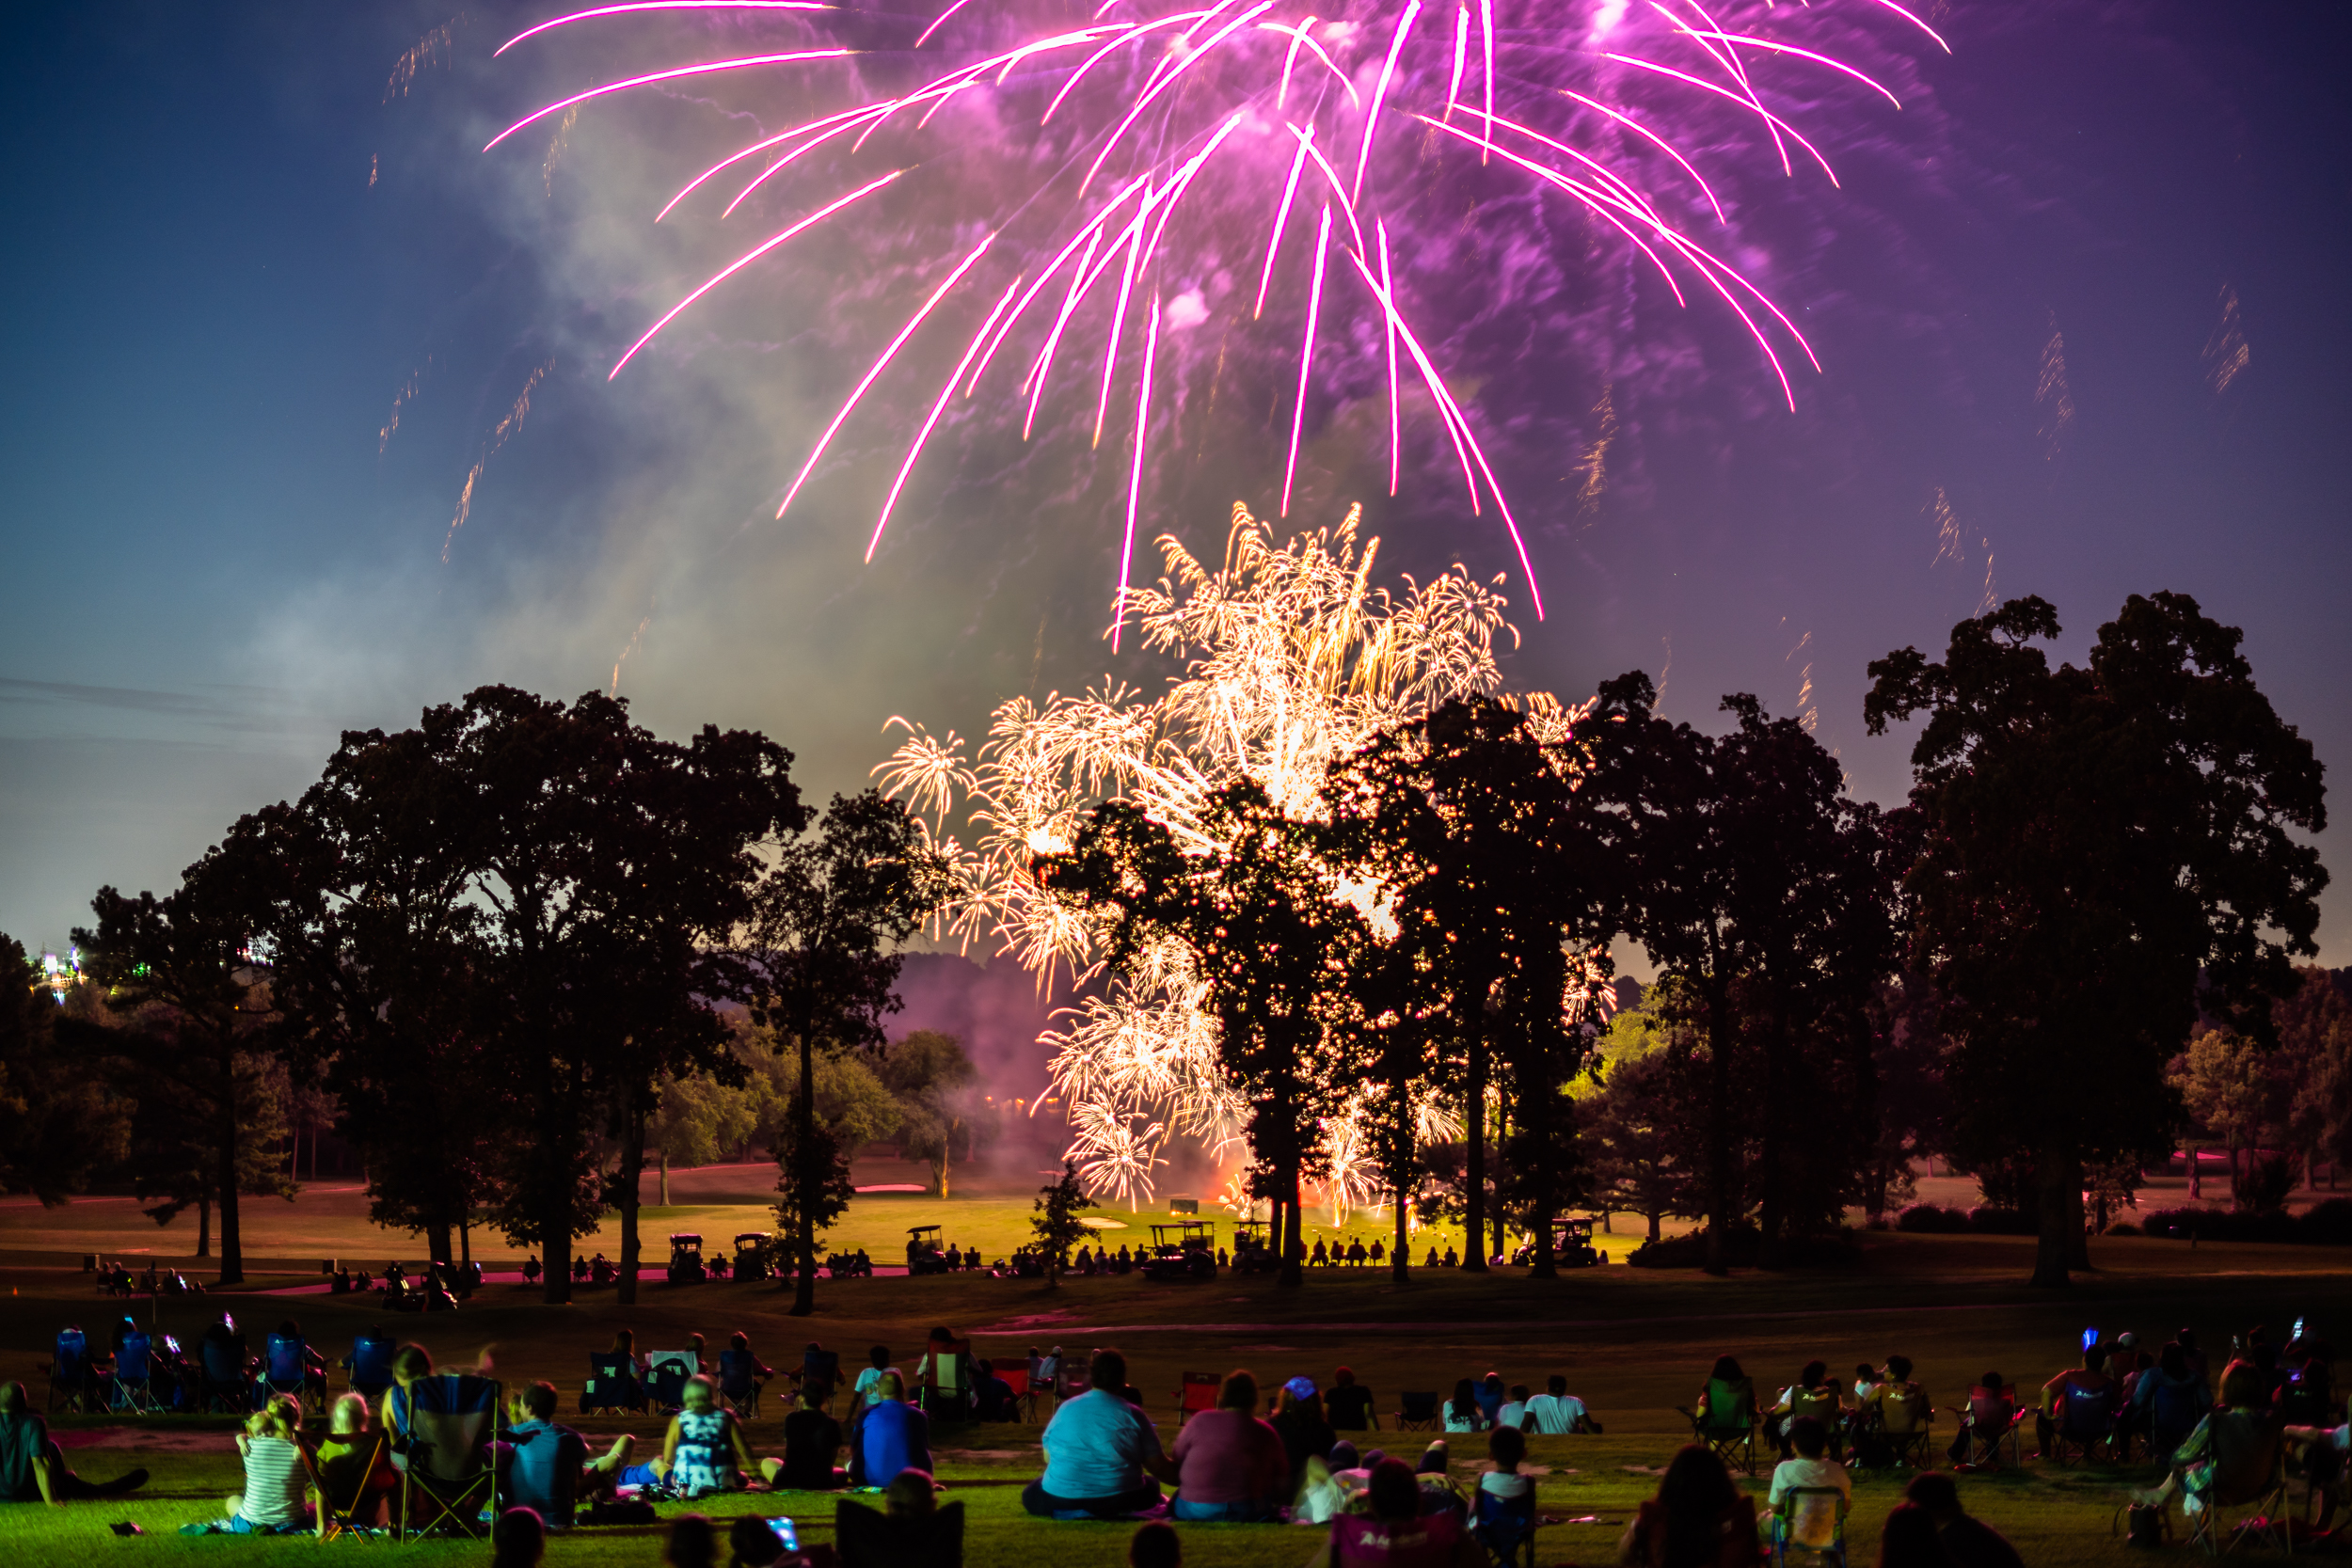 The start of the Fireworks show at the Springdale Country Club